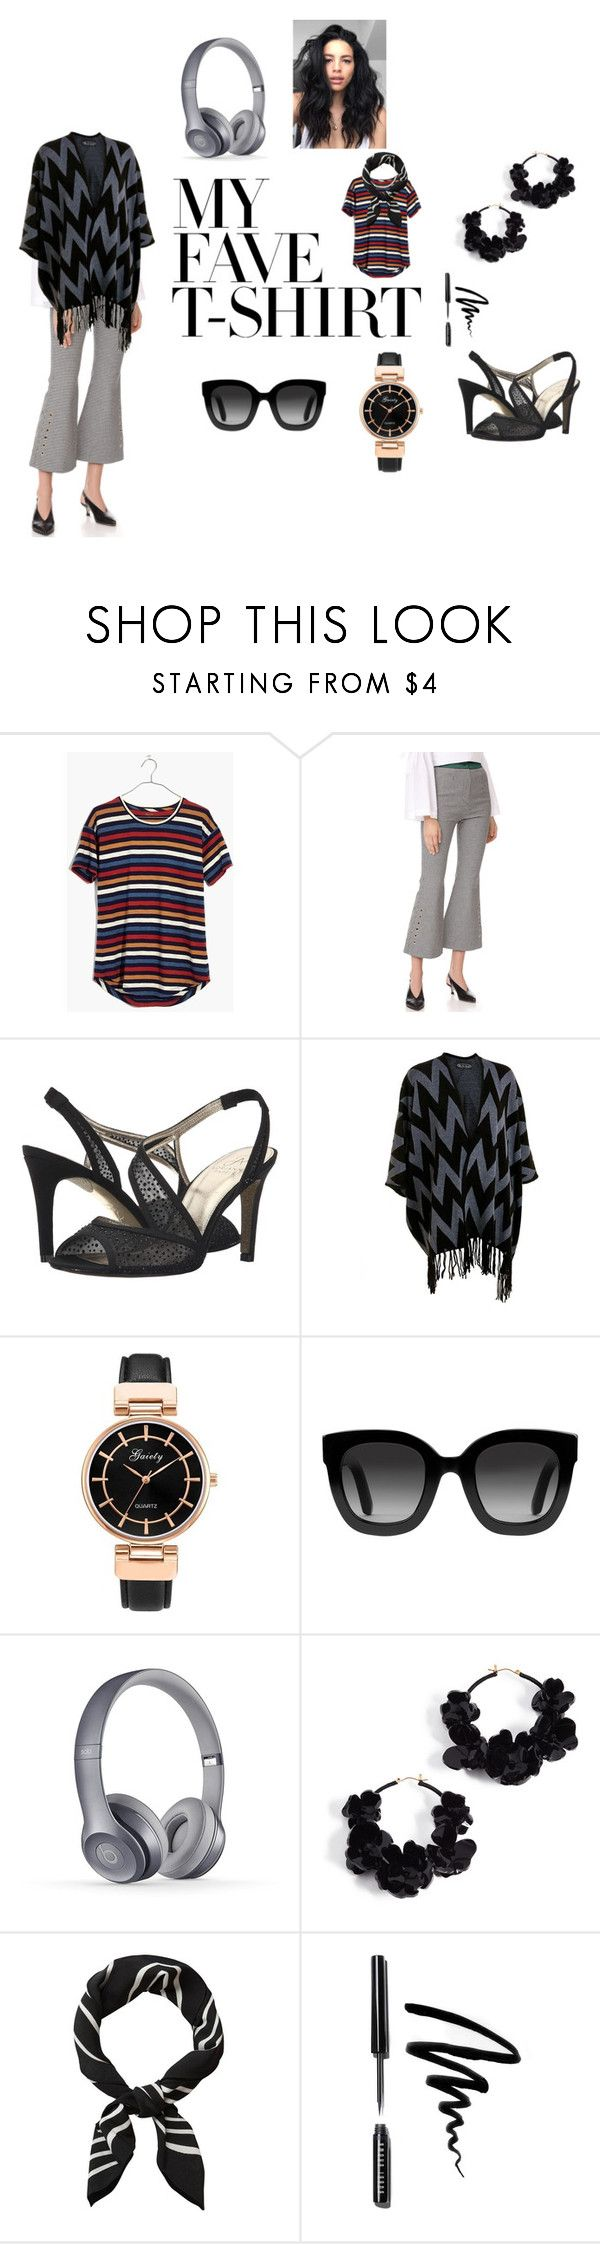 """Little Striped Shirt"" by rocky-springs-vintage on Polyvore featuring Madewell, Romanchic, Adrianna Papell, Gucci, Oscar de la Renta, Bobbi Brown Cosmetics and MyFaveTshirt"